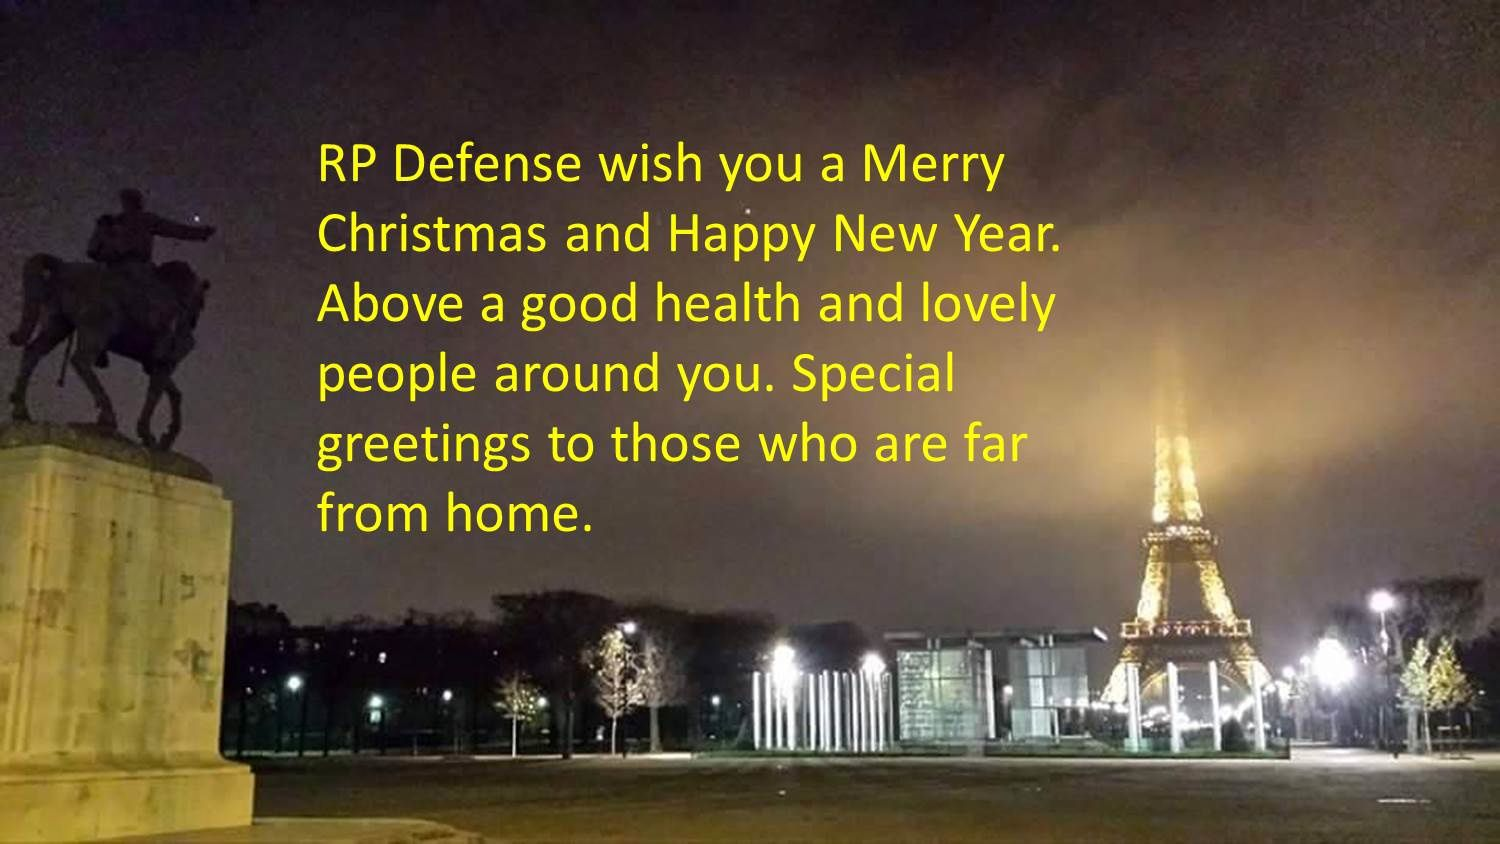 RP Defense wish you a Merry Christmas and Happy New Year !